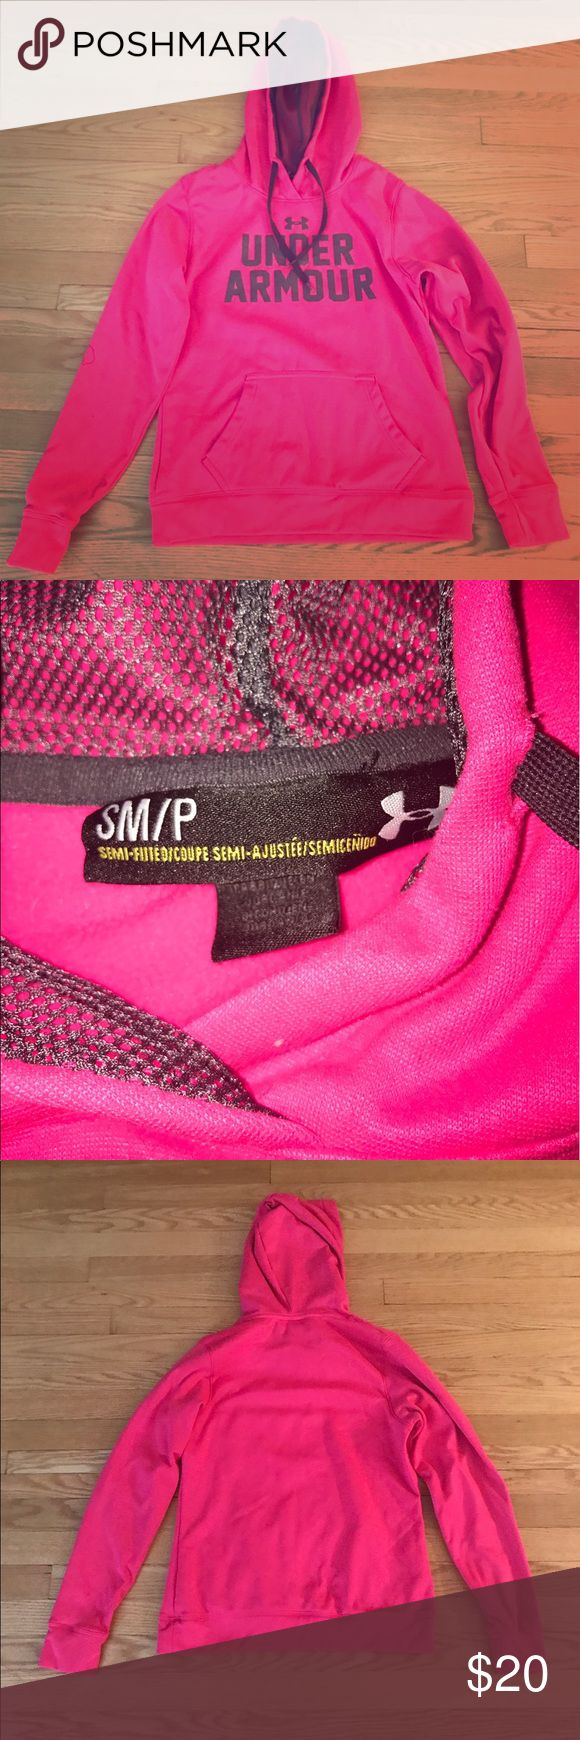 ☀️Under Armour Pink Hoodie☀️ This item up for your consideration is a women's small pink hoodie by Under Armour. It is in excellent condition! No stains, rips or tears! Under Armour Tops Sweatshirts & Hoodies